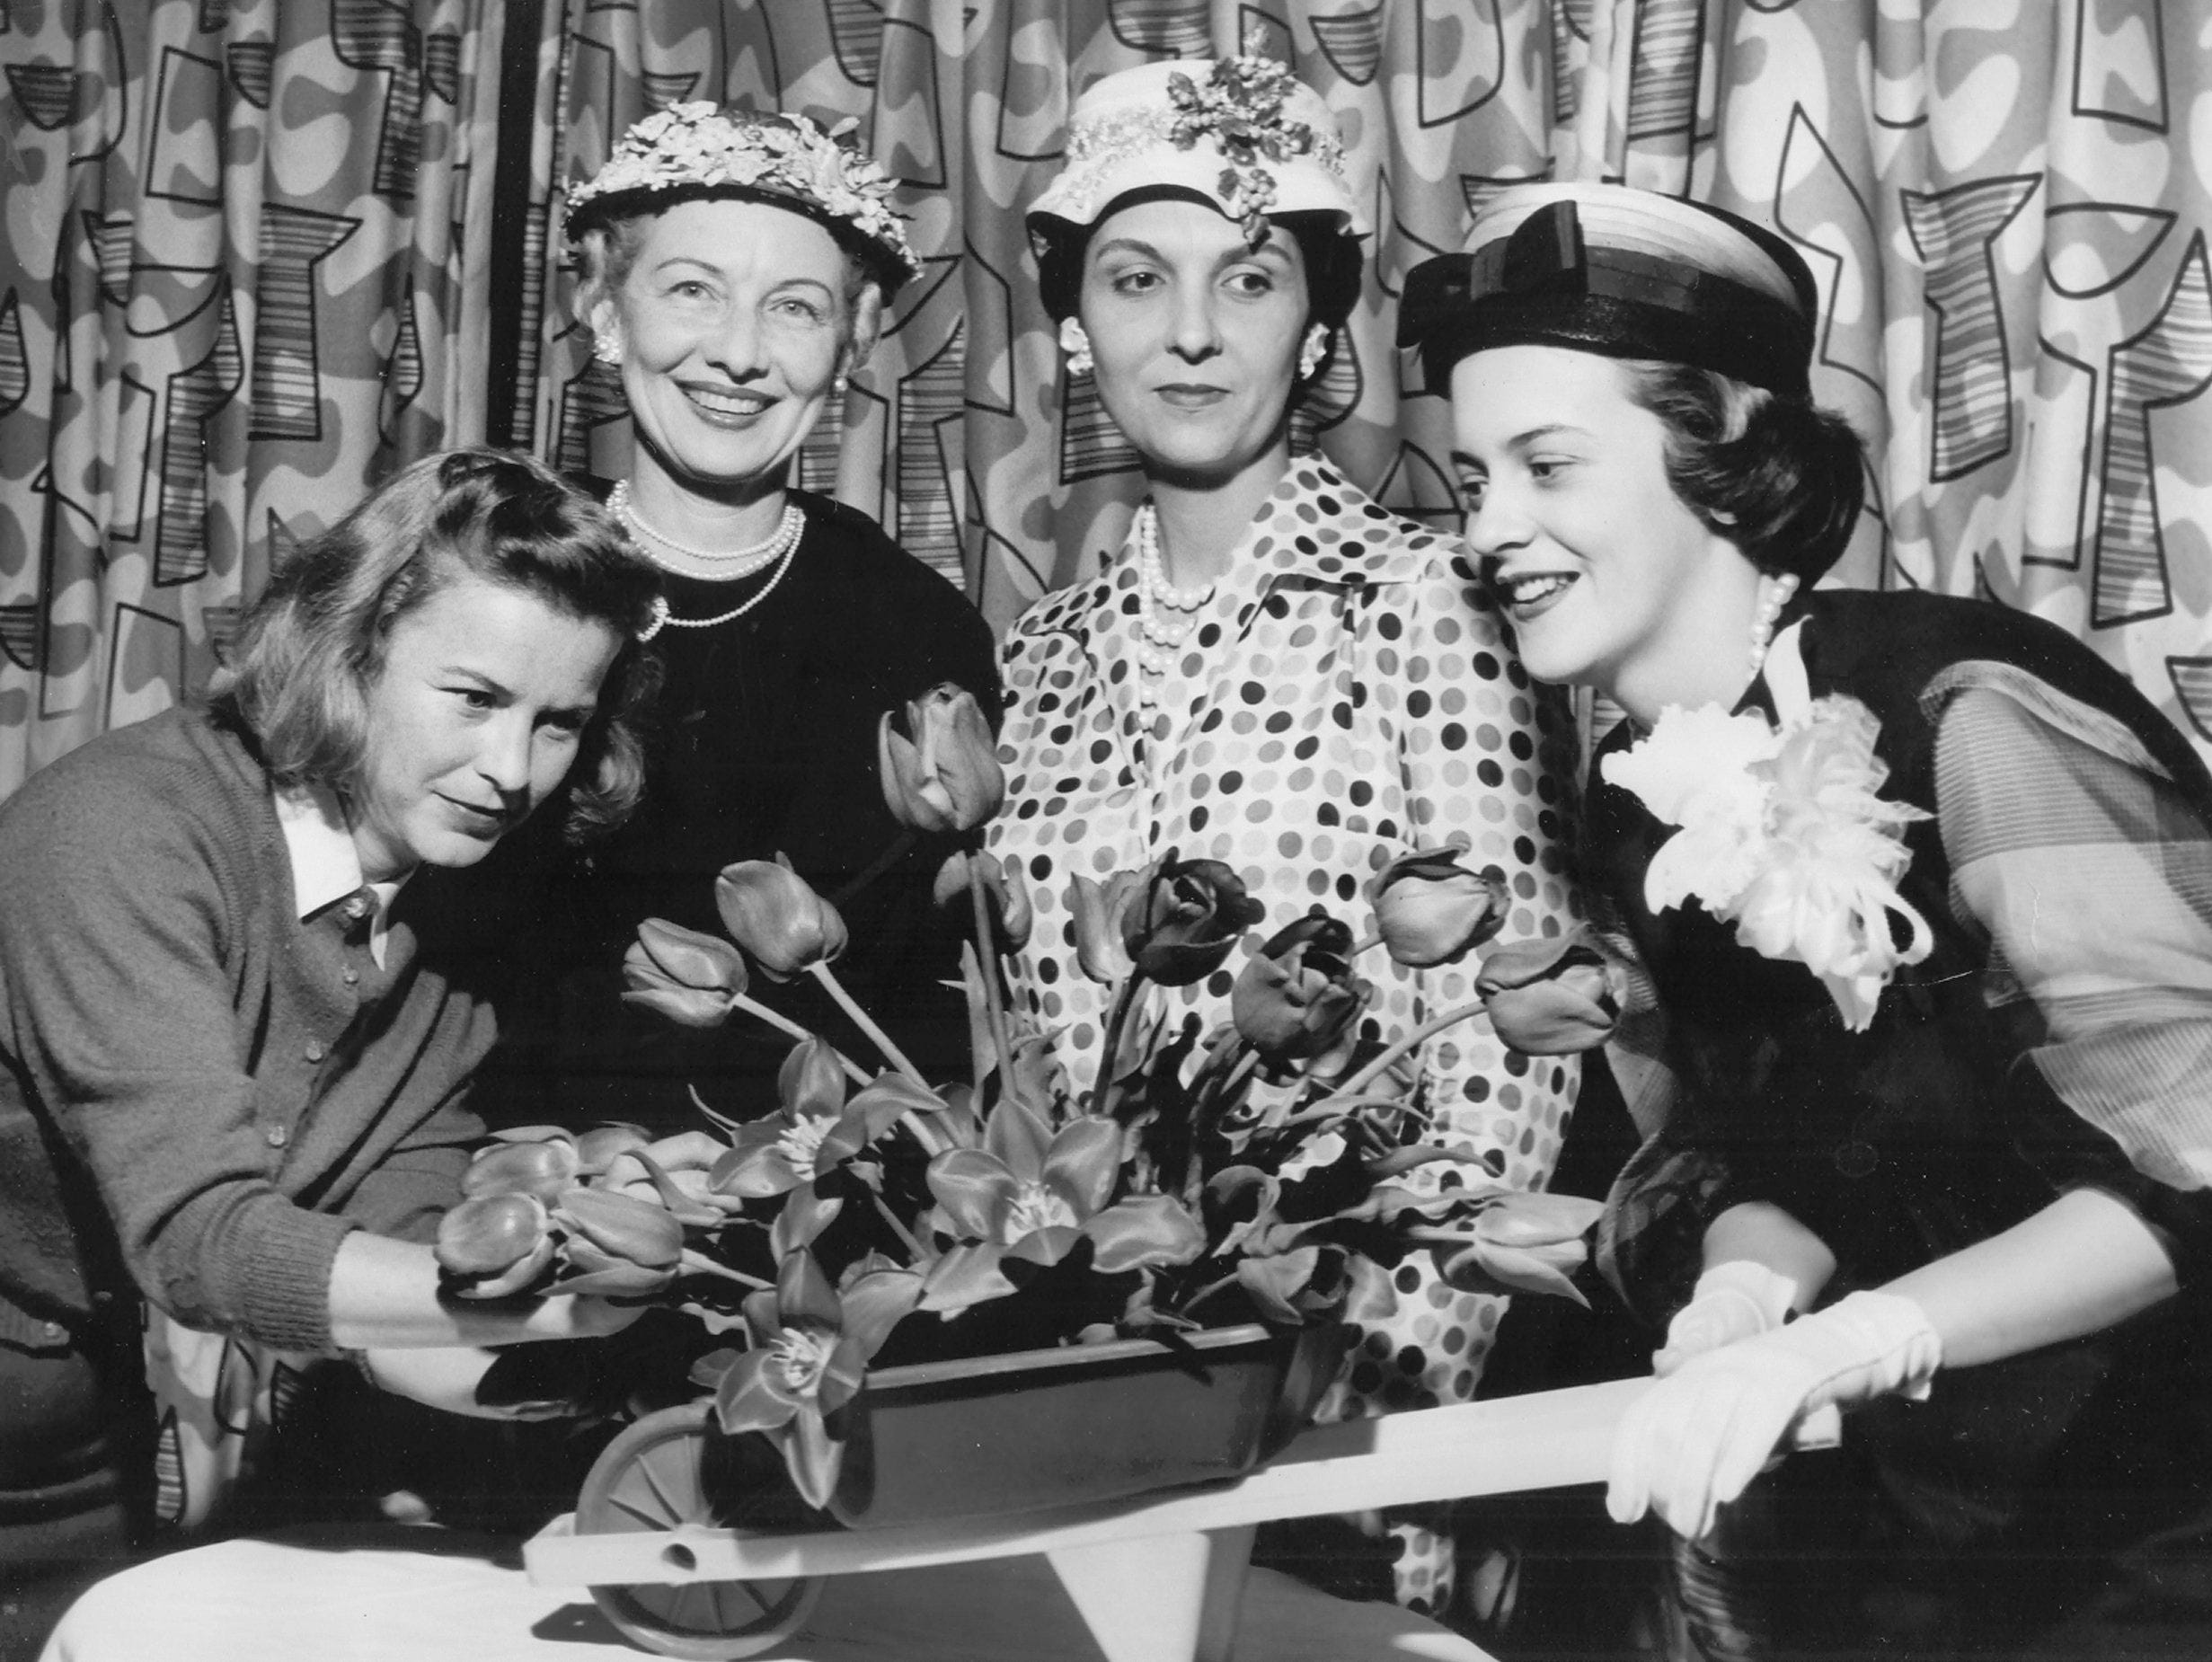 Mrs. Allan Fisher, left, puts last-minute touches on table decorations for a luncheon at the Peabody on April 9, 1959, honoring candidates for the Miss City Beautiful title. Looking on are Mrs. Allan Redd, second from left, Mrs. Leonard Pierotti, party chairmen, and Miss Florence Ann Wilkins, retiring Miss City Beautiful.